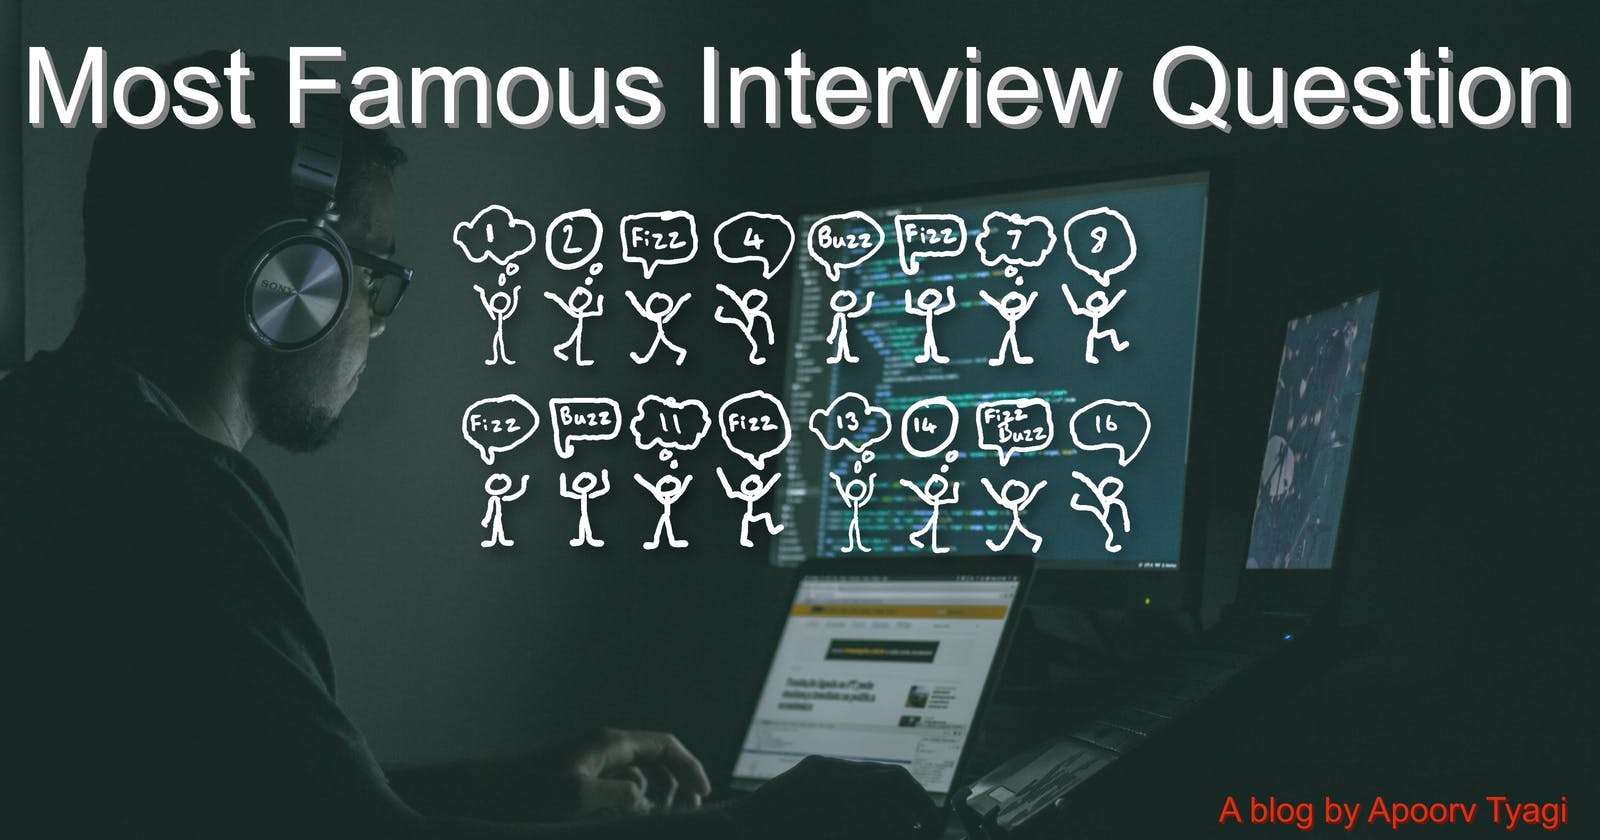 The Most Famous Coding Interview Question